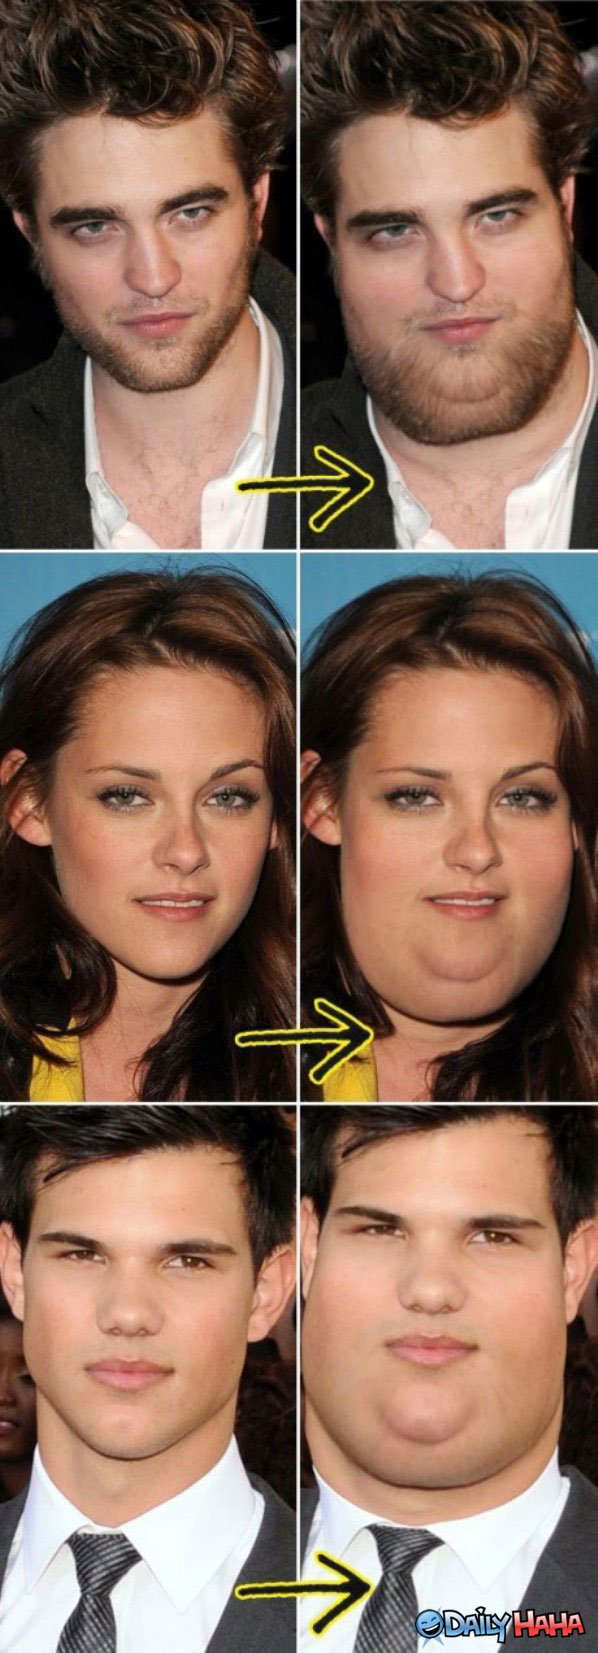 twighlight fatties. dont look at the tags, and i didnt make it.....i had to share it from Dailyhaha.com.